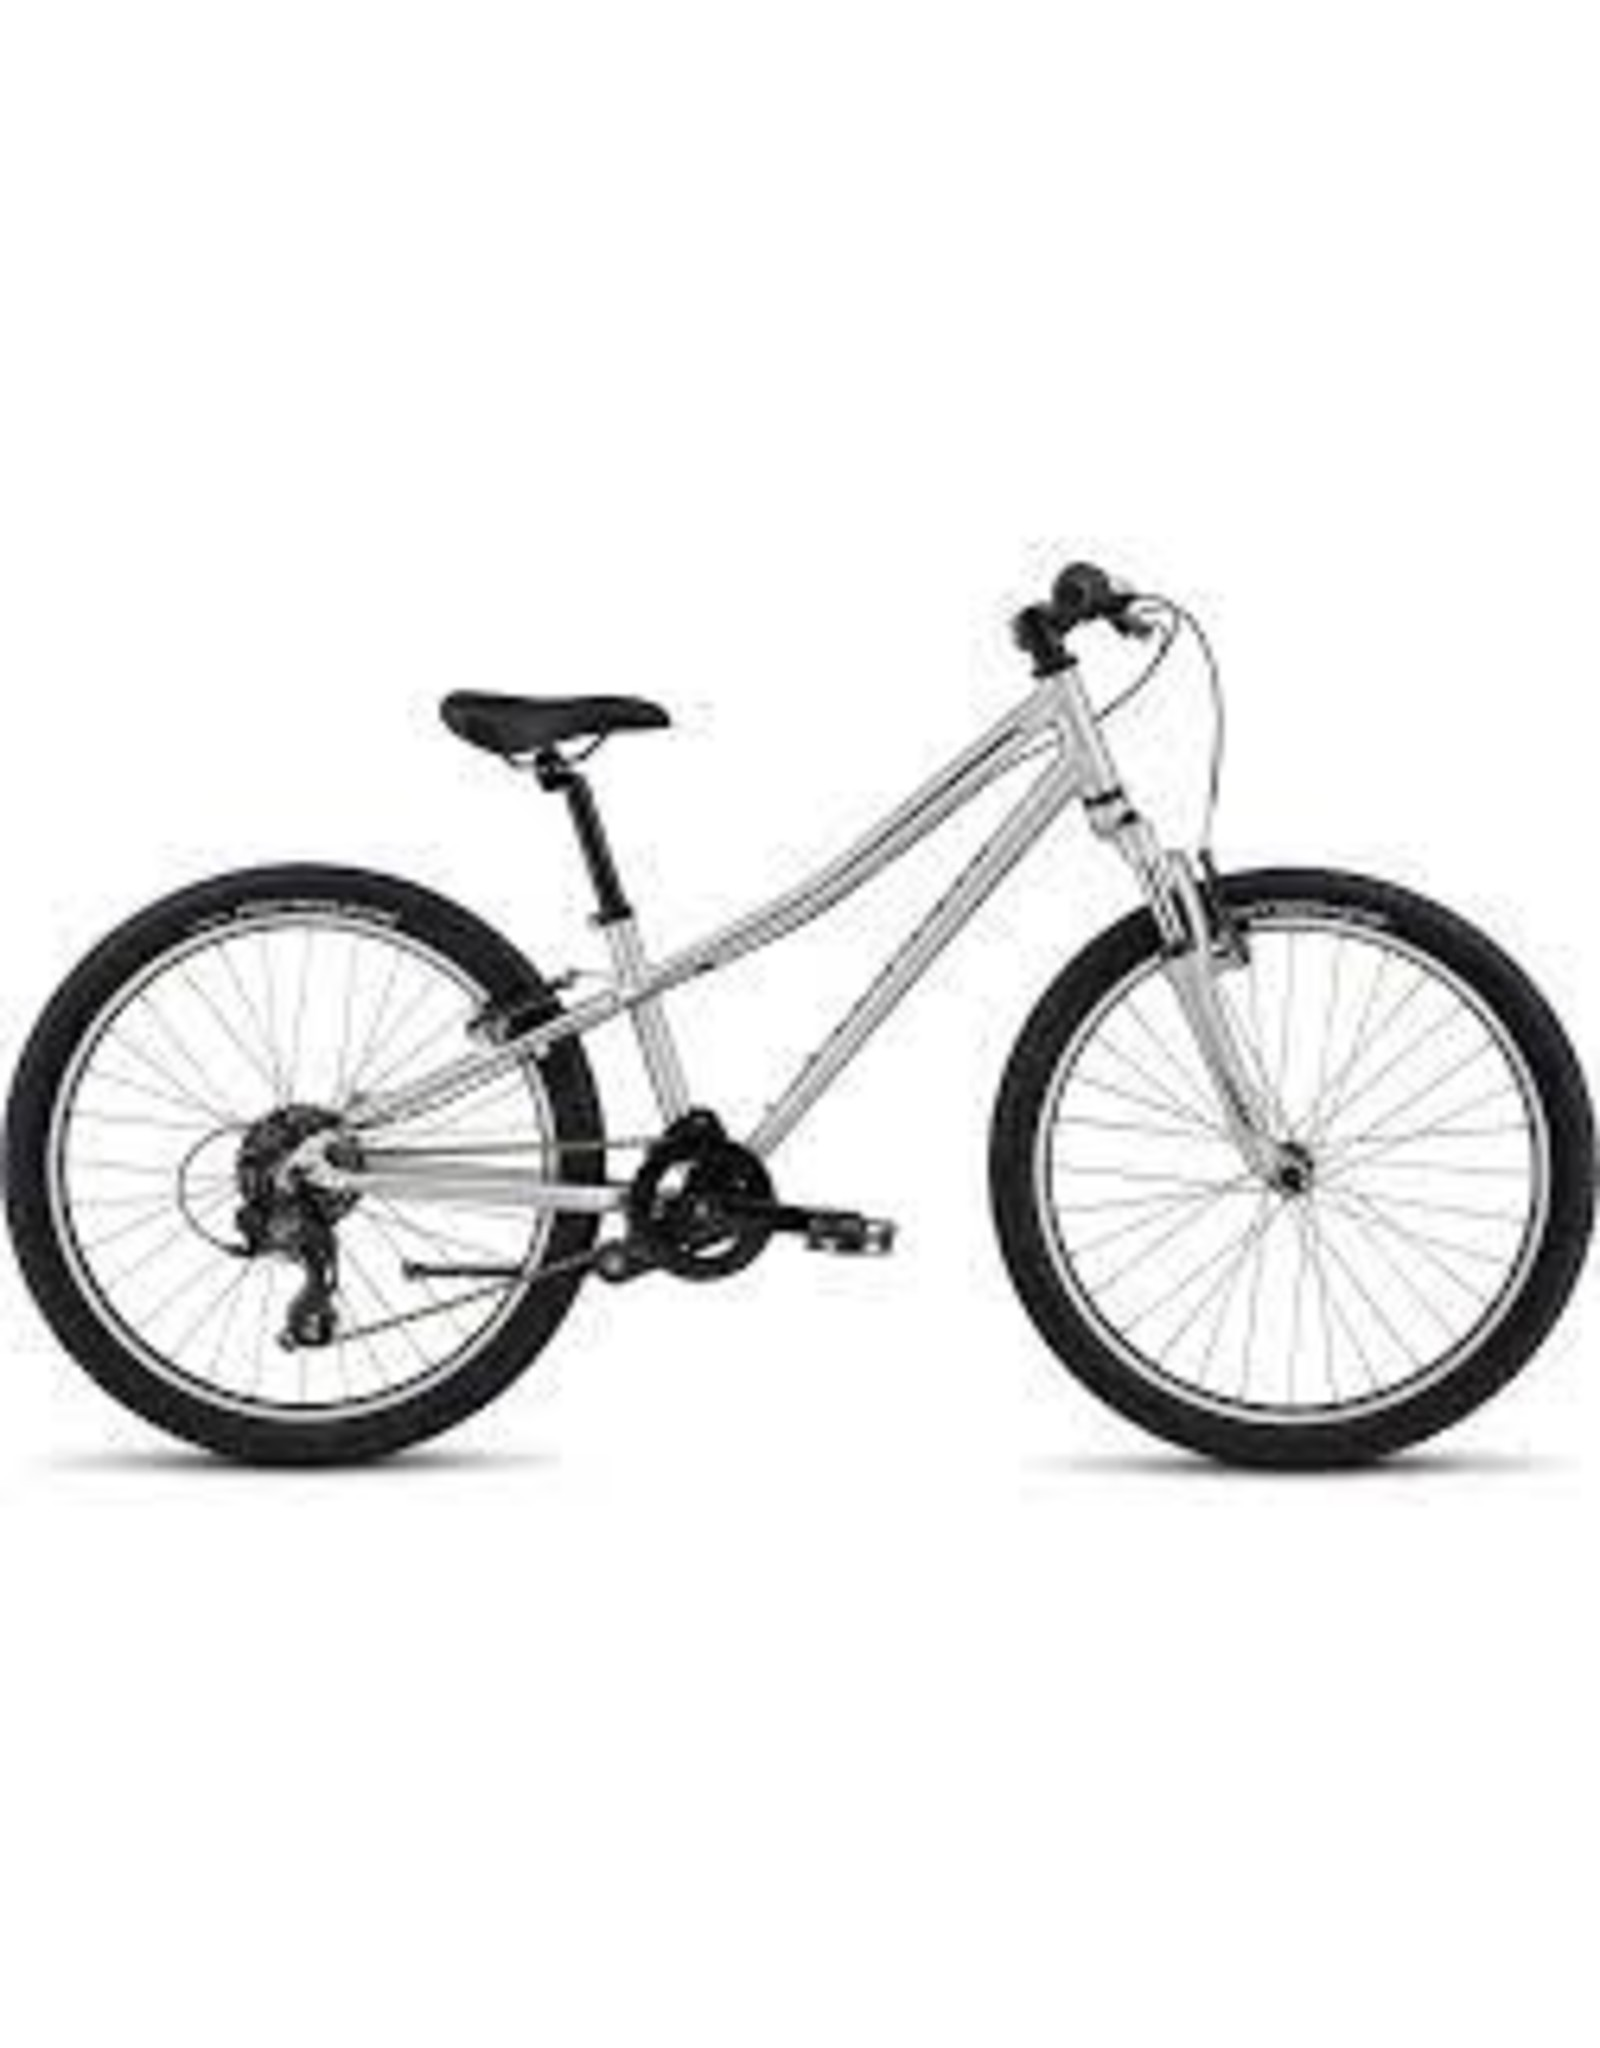 Specialized HTRK 24 LTSIL/BLK 11